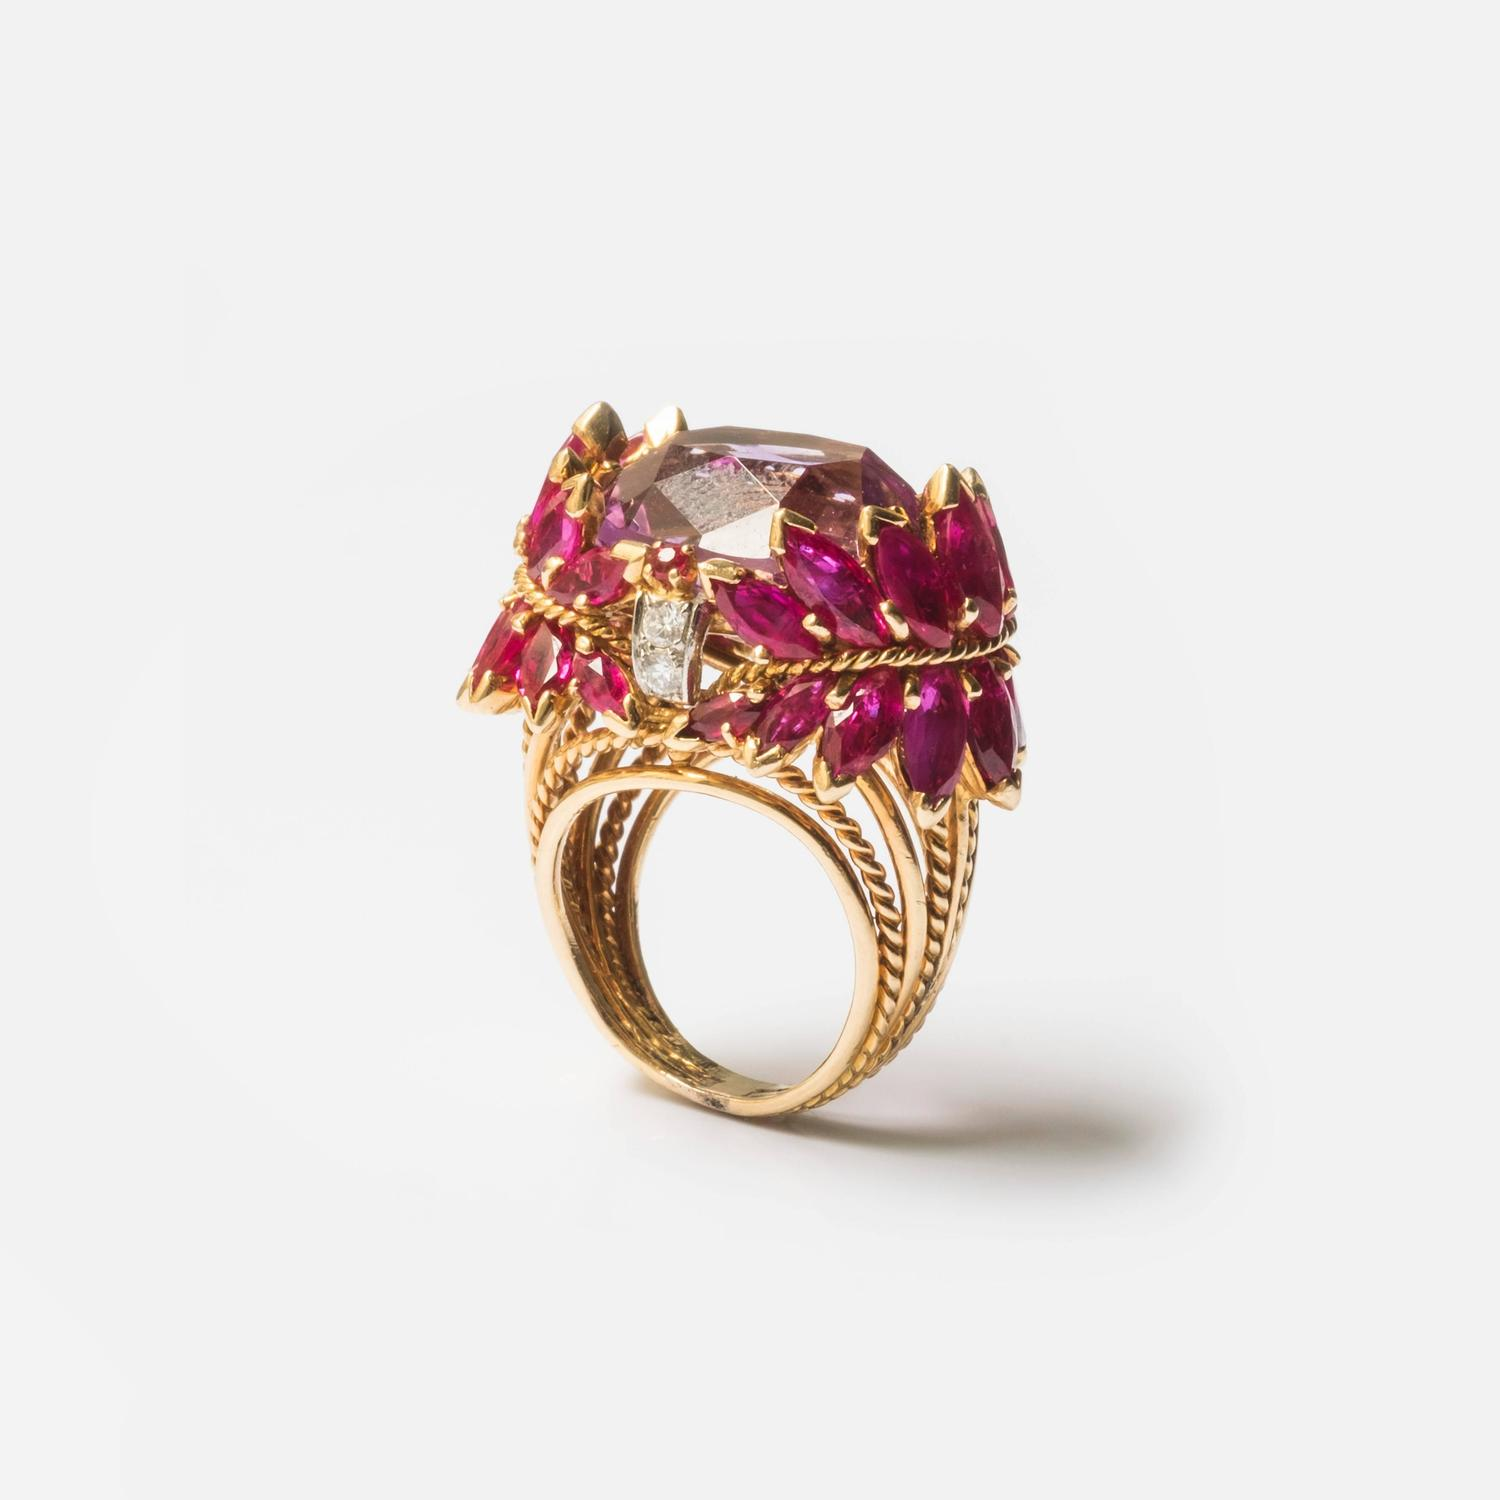 1960s Marchak Ruby Morganite Diamond Gold Platinum Ring For Sale at 1stdibs